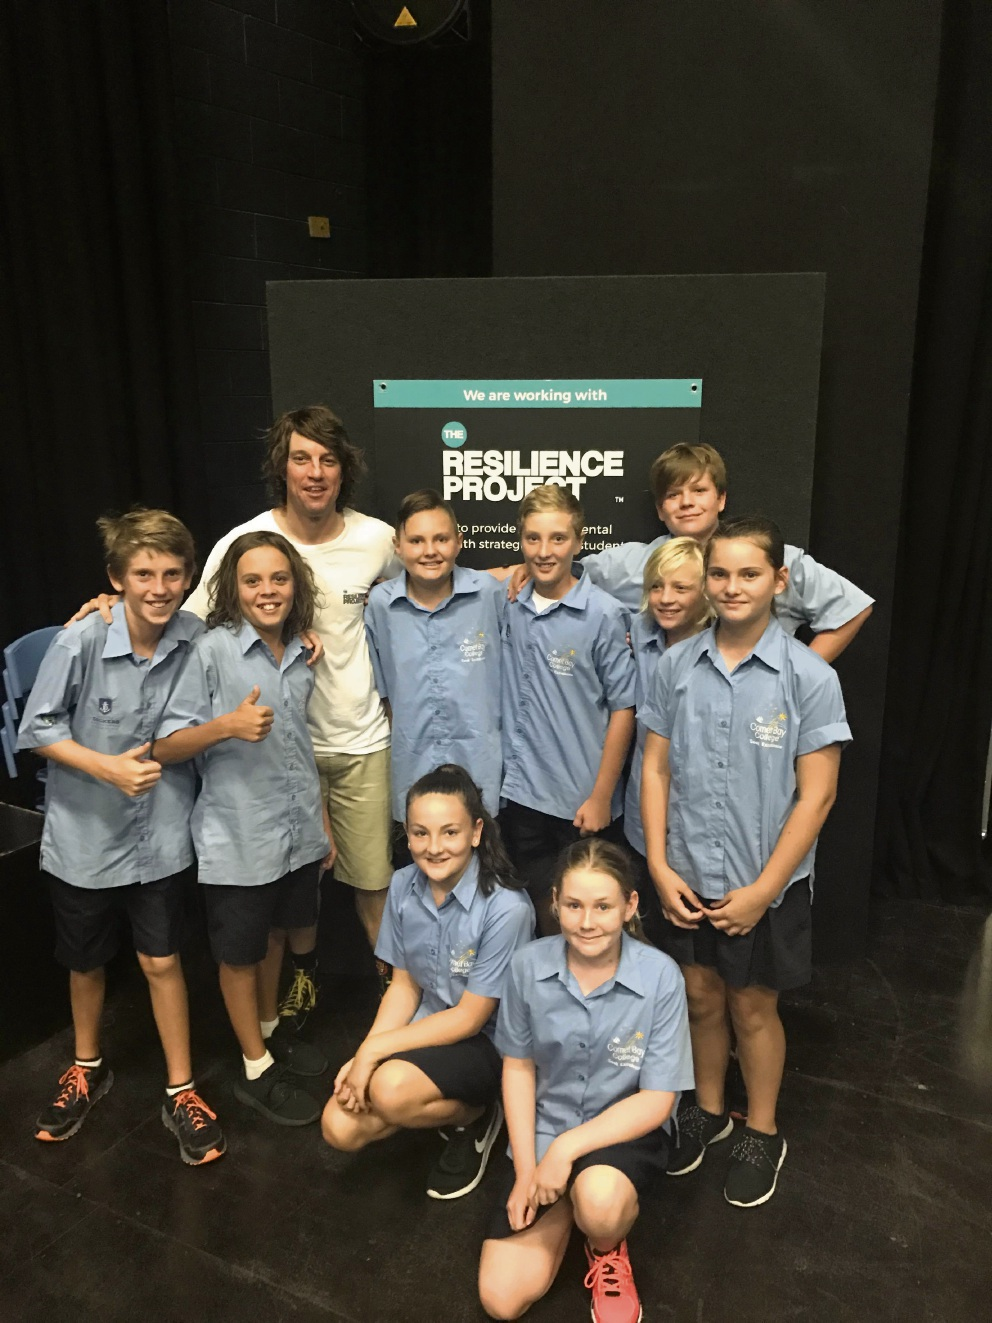 The Resilience Project presenter Martin |Heppell with Comet Bay College students.